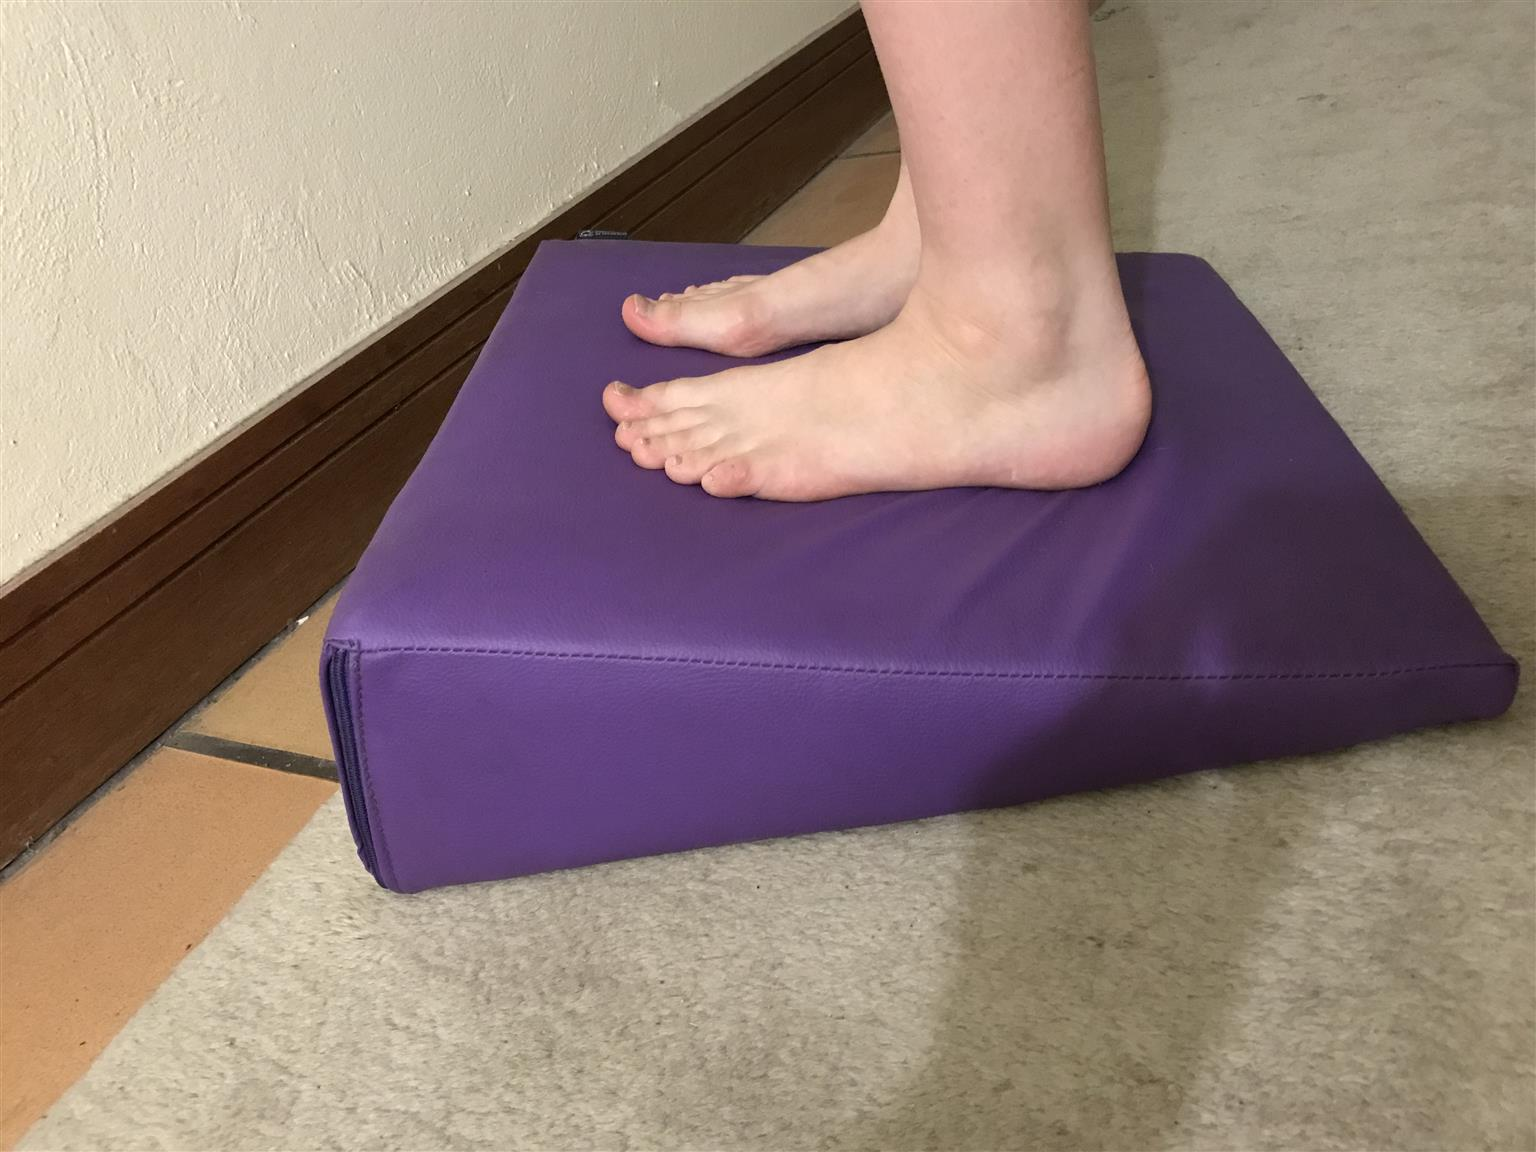 Physiotherapy wedge brand new